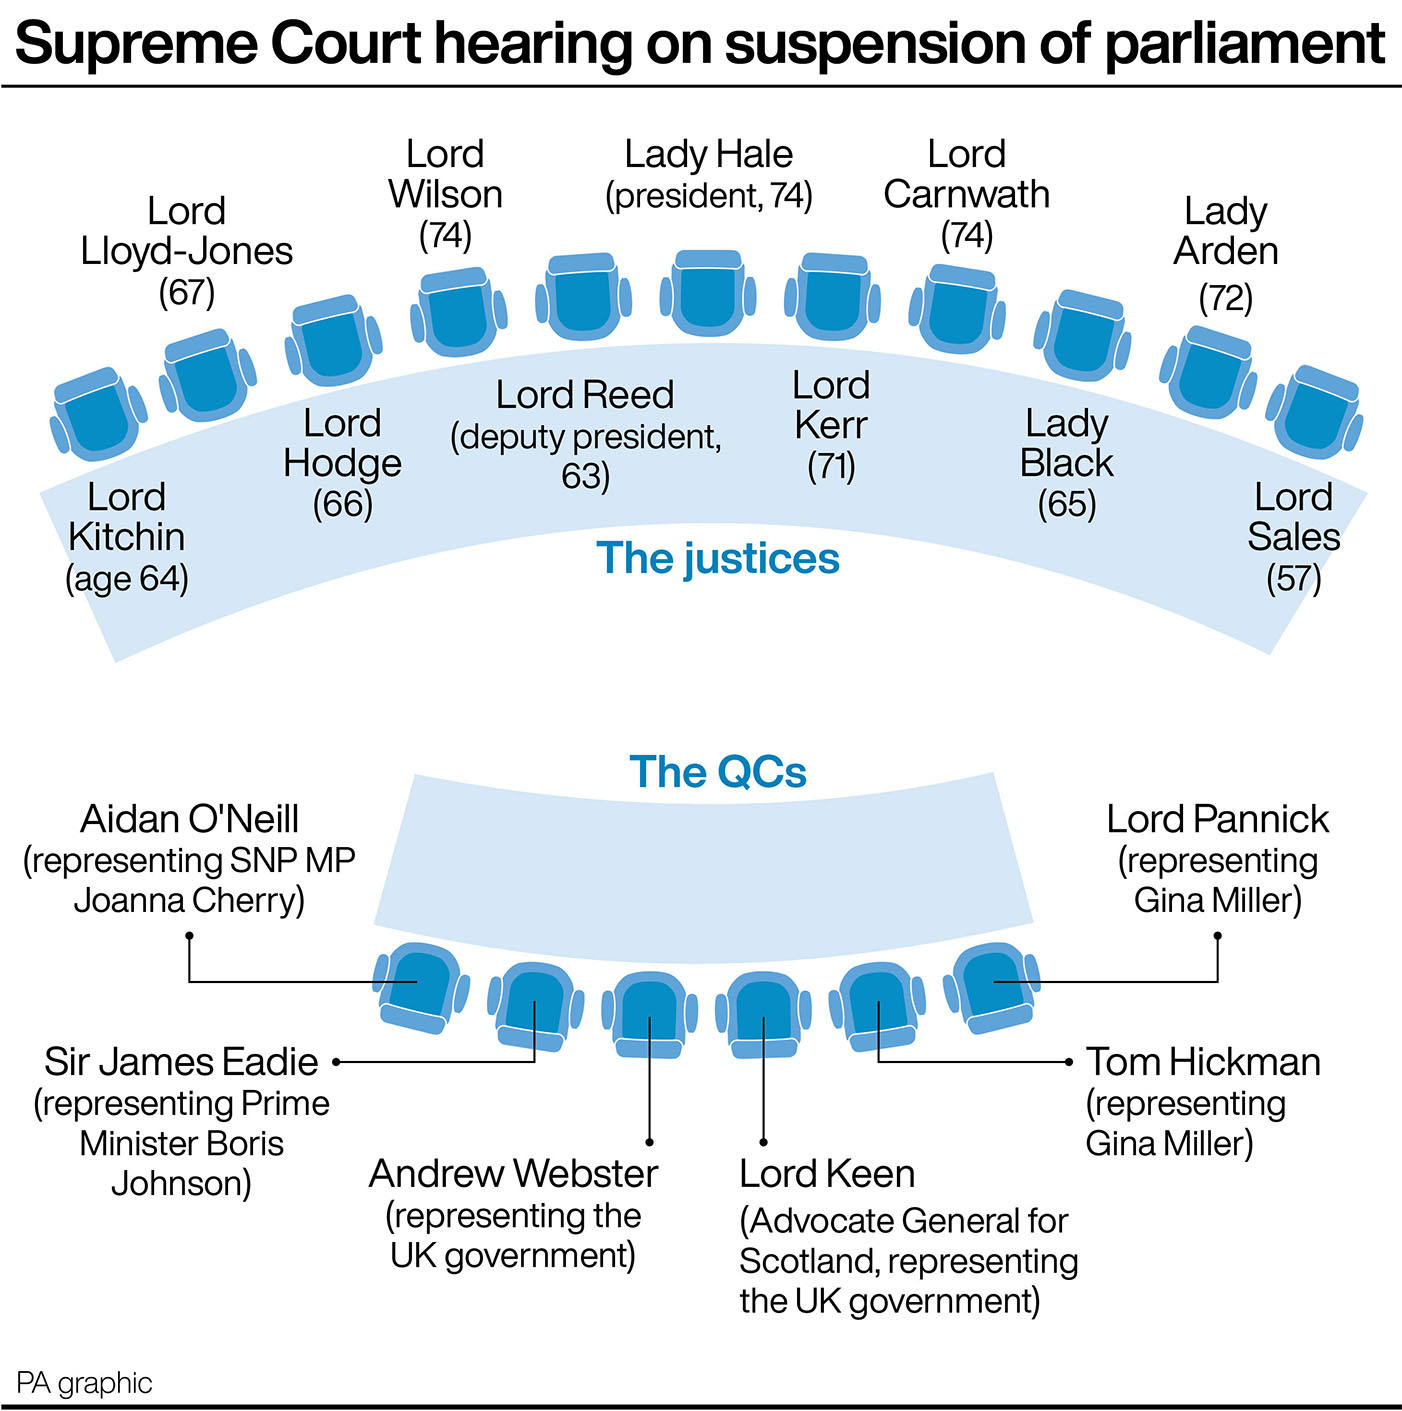 The key figures in the Supreme Court hearing on the suspension of parliament